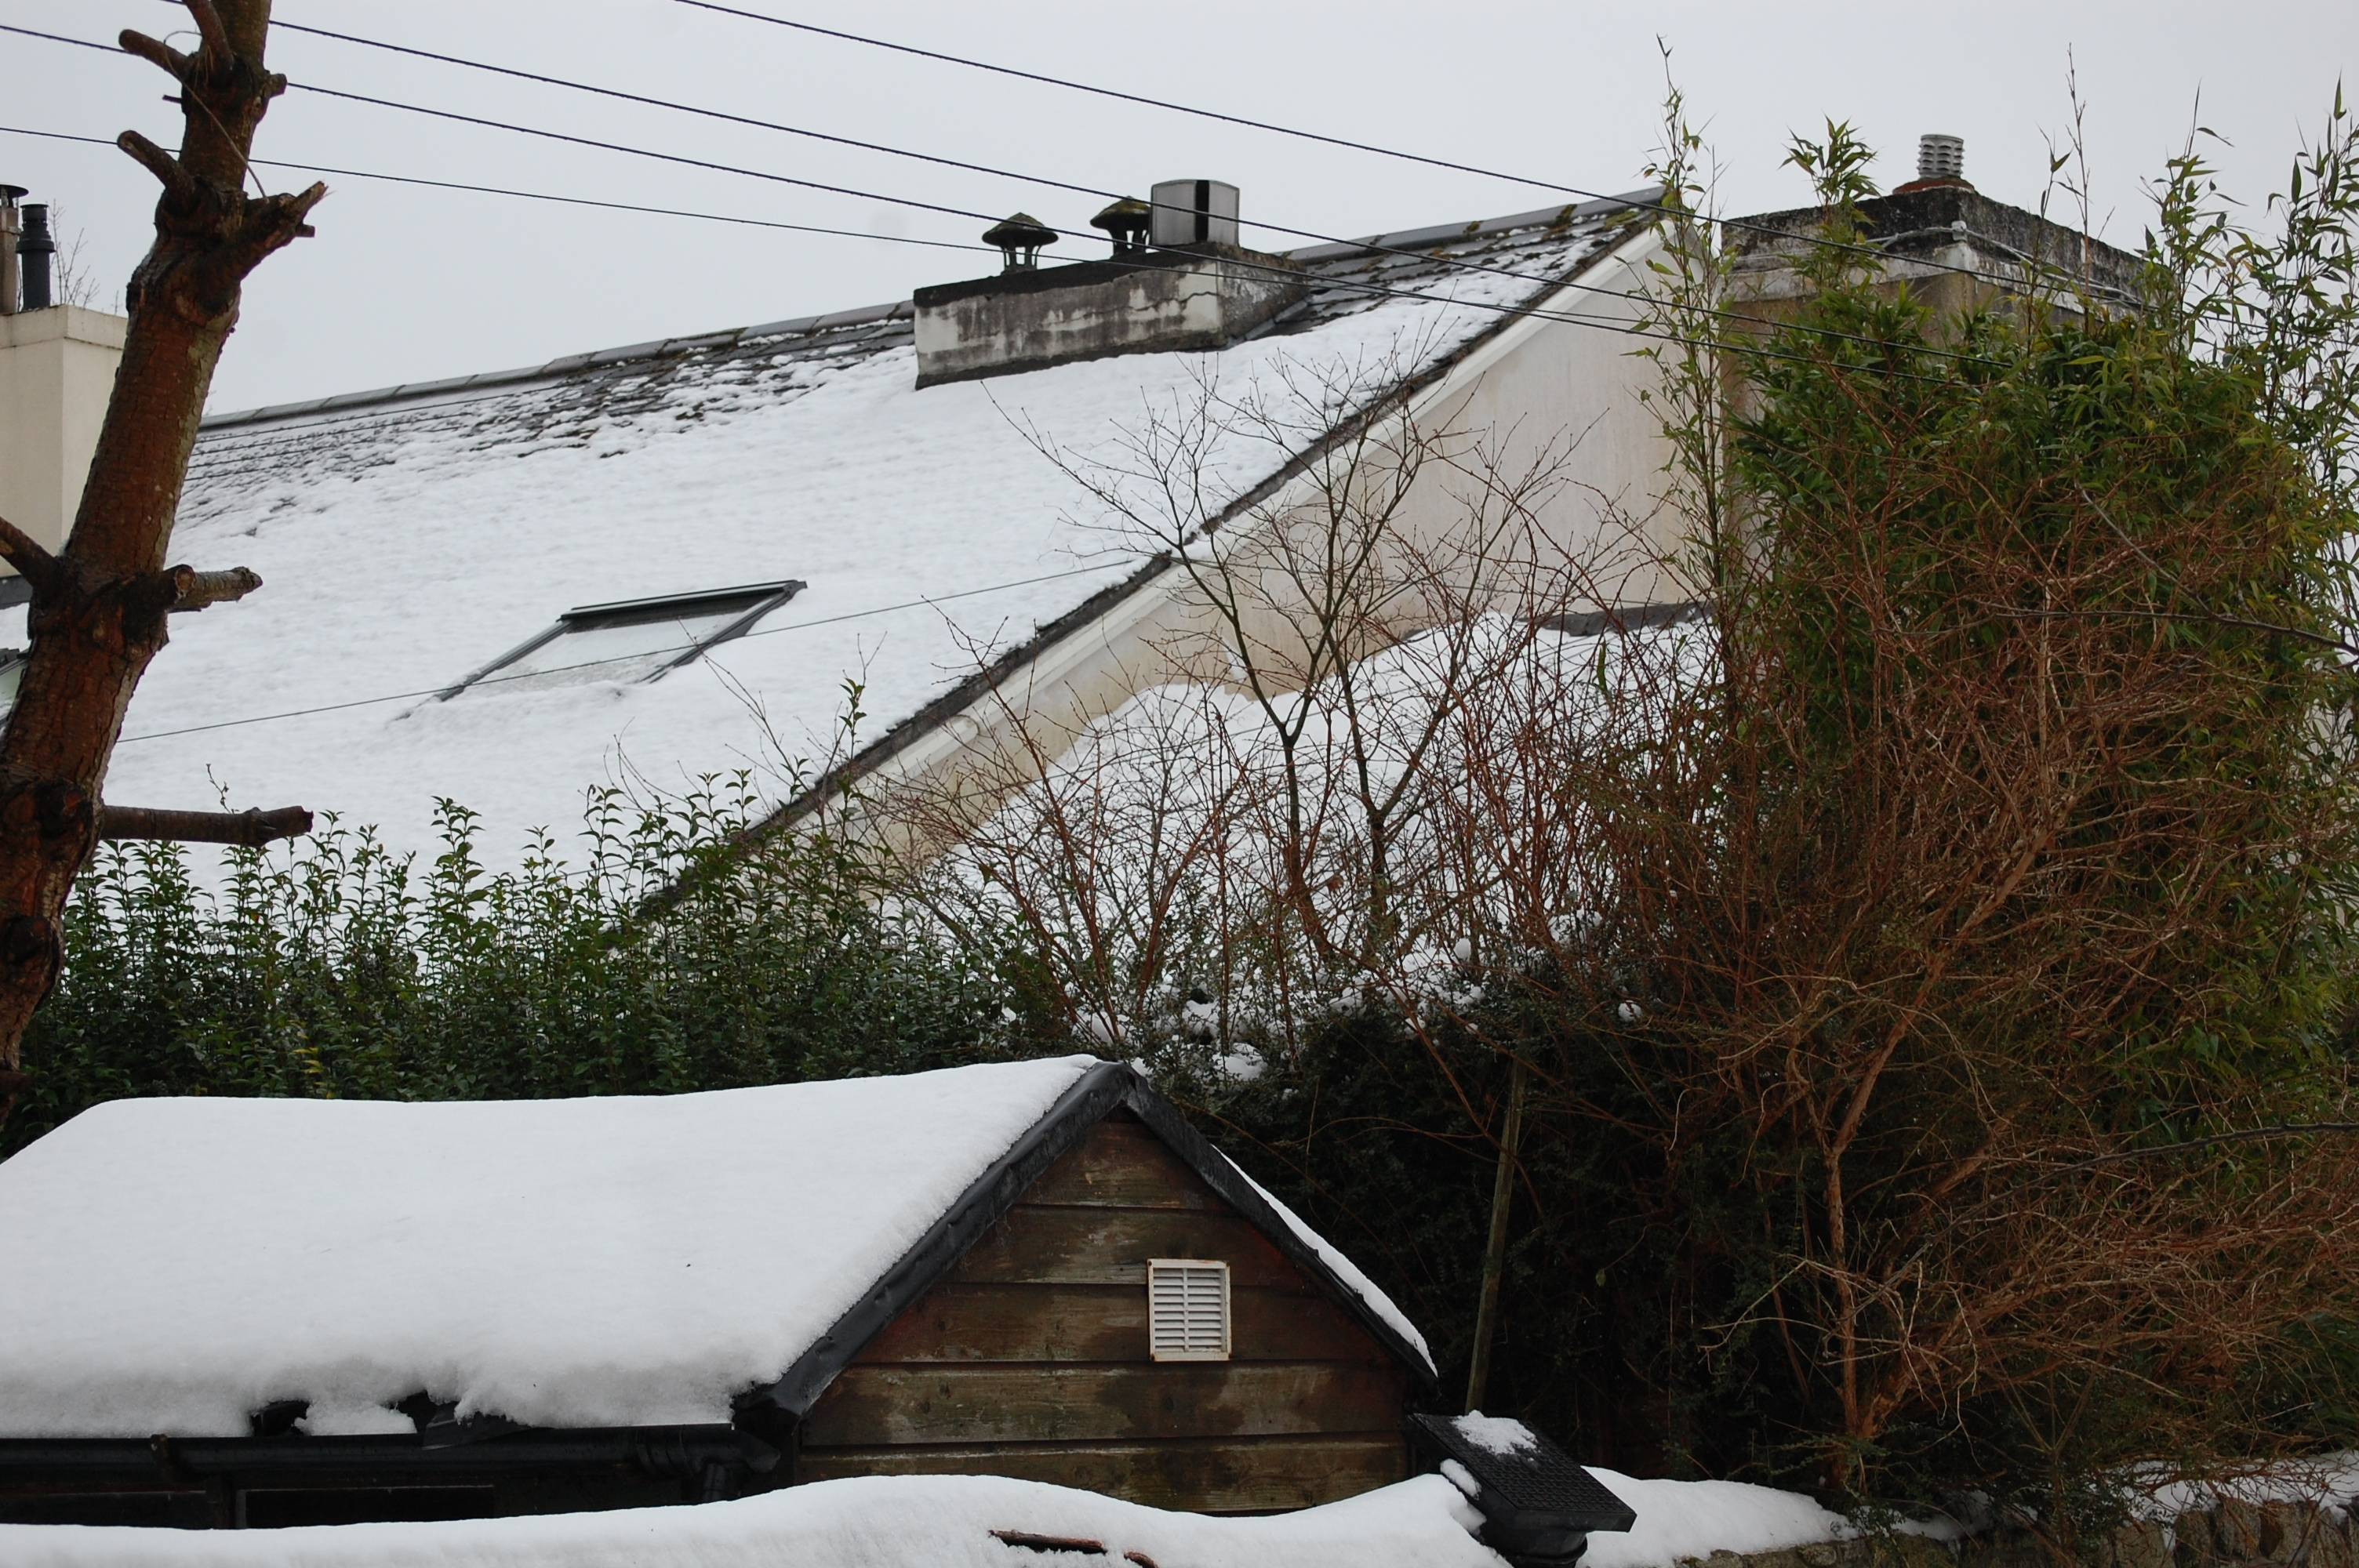 Snow drifts accumulate on roofs causing additional loads